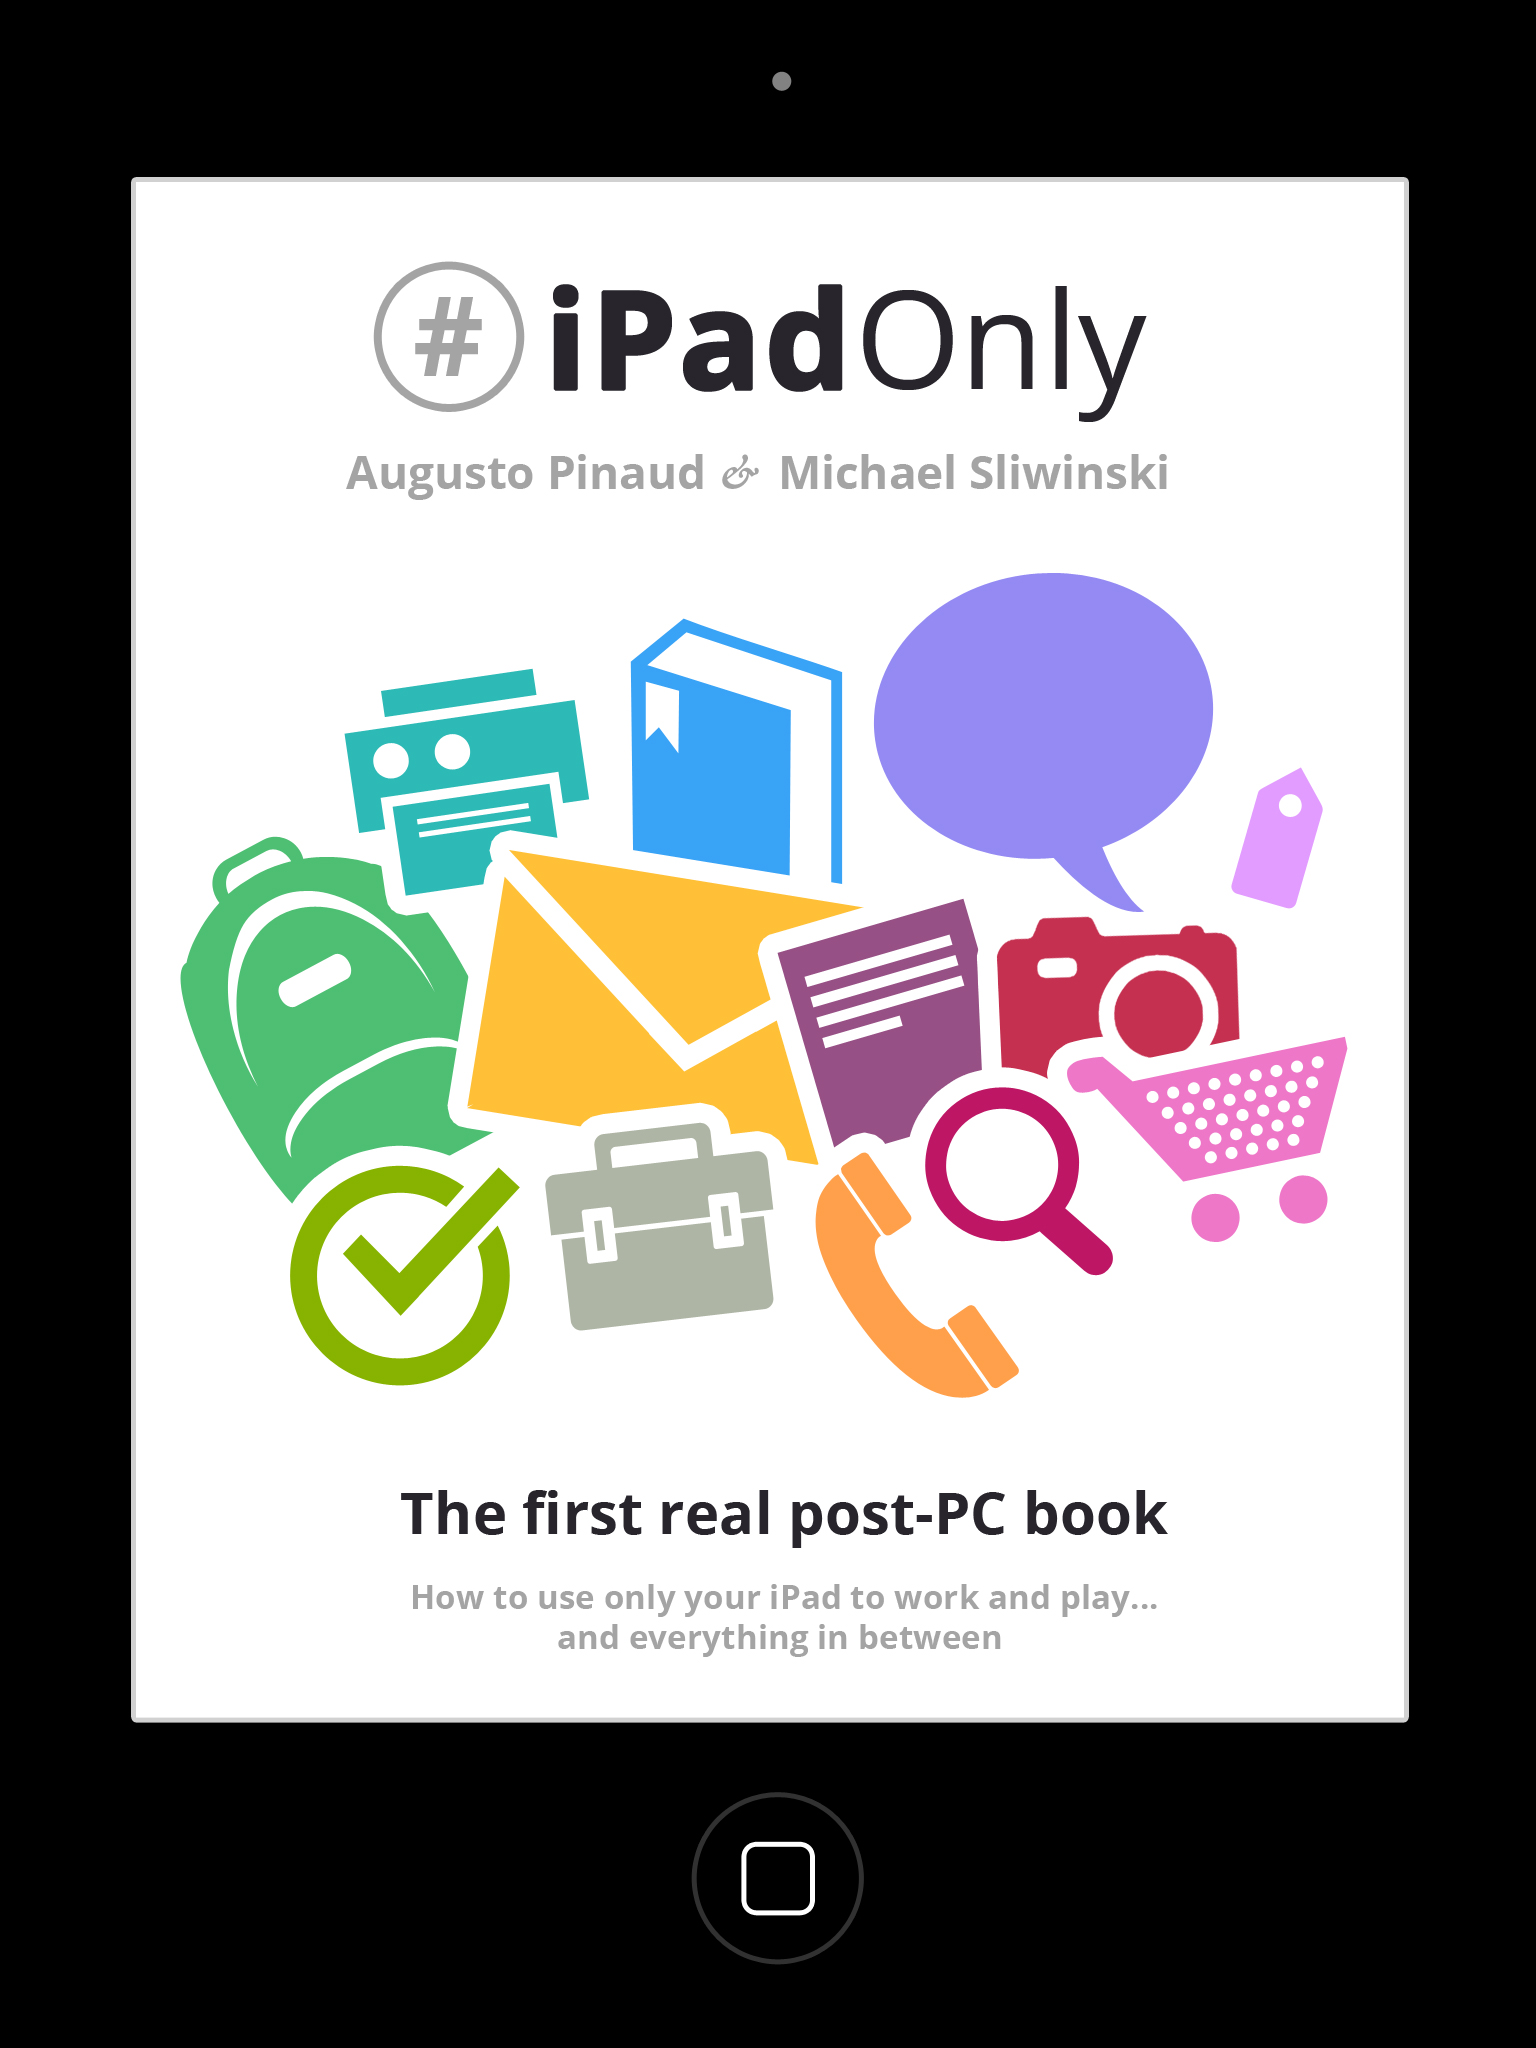 #iPadOnly — The first real post-PC book. How to use only your iPad to work, play and everything in between.